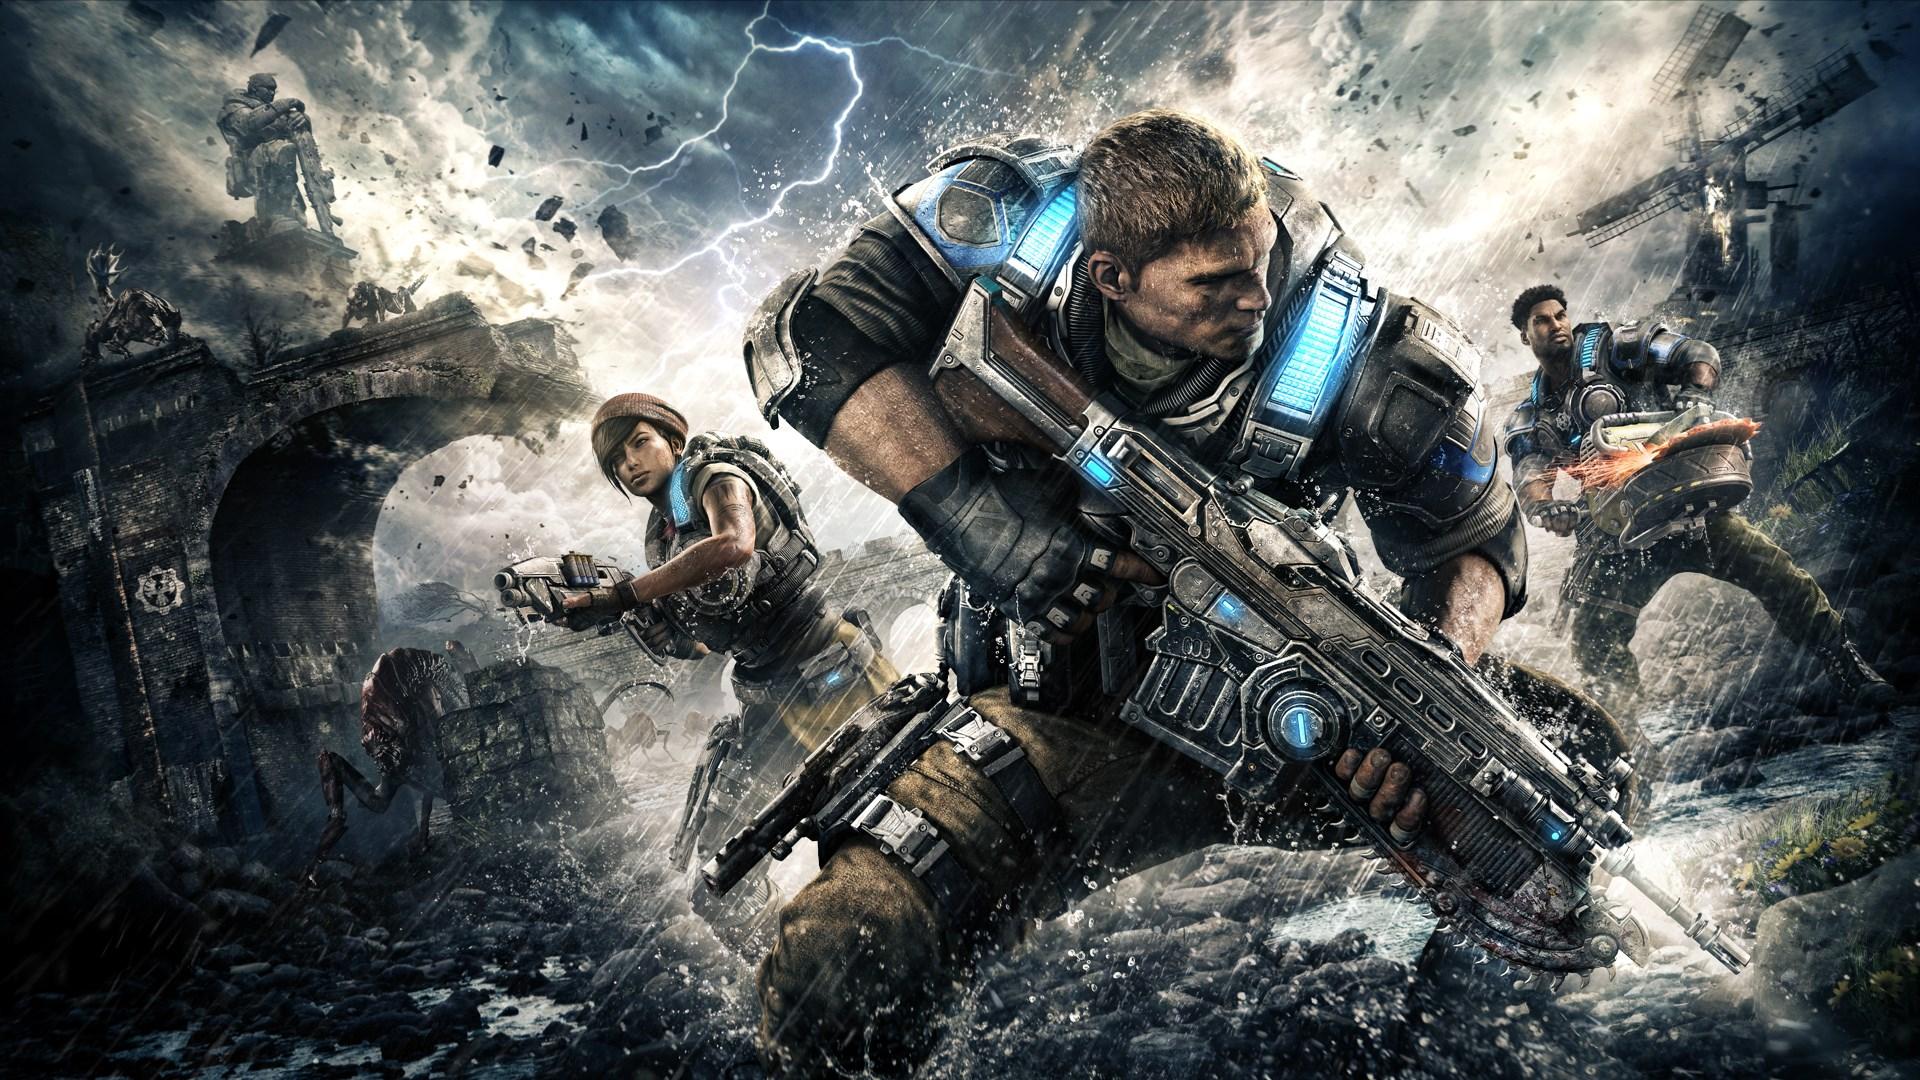 Buy Gears of War 4 - Microsoft Store on modern warfare 2 map list, left 4 dead map list, wolfenstein map list, call of duty black ops 2 map list, battlefield bad company 2 map list, titanfall map list, just cause 2 map list, rainbow six vegas map list, team fortress 2 map list, halo map list, battlefield 3 map list, modern warfare 3 map list, doom 3 map list, minecraft map list, borderlands 2 map list, red orchestra 2 map list, cod black ops map list, destiny map list, metal gear solid map list, gears of war 1 map list,